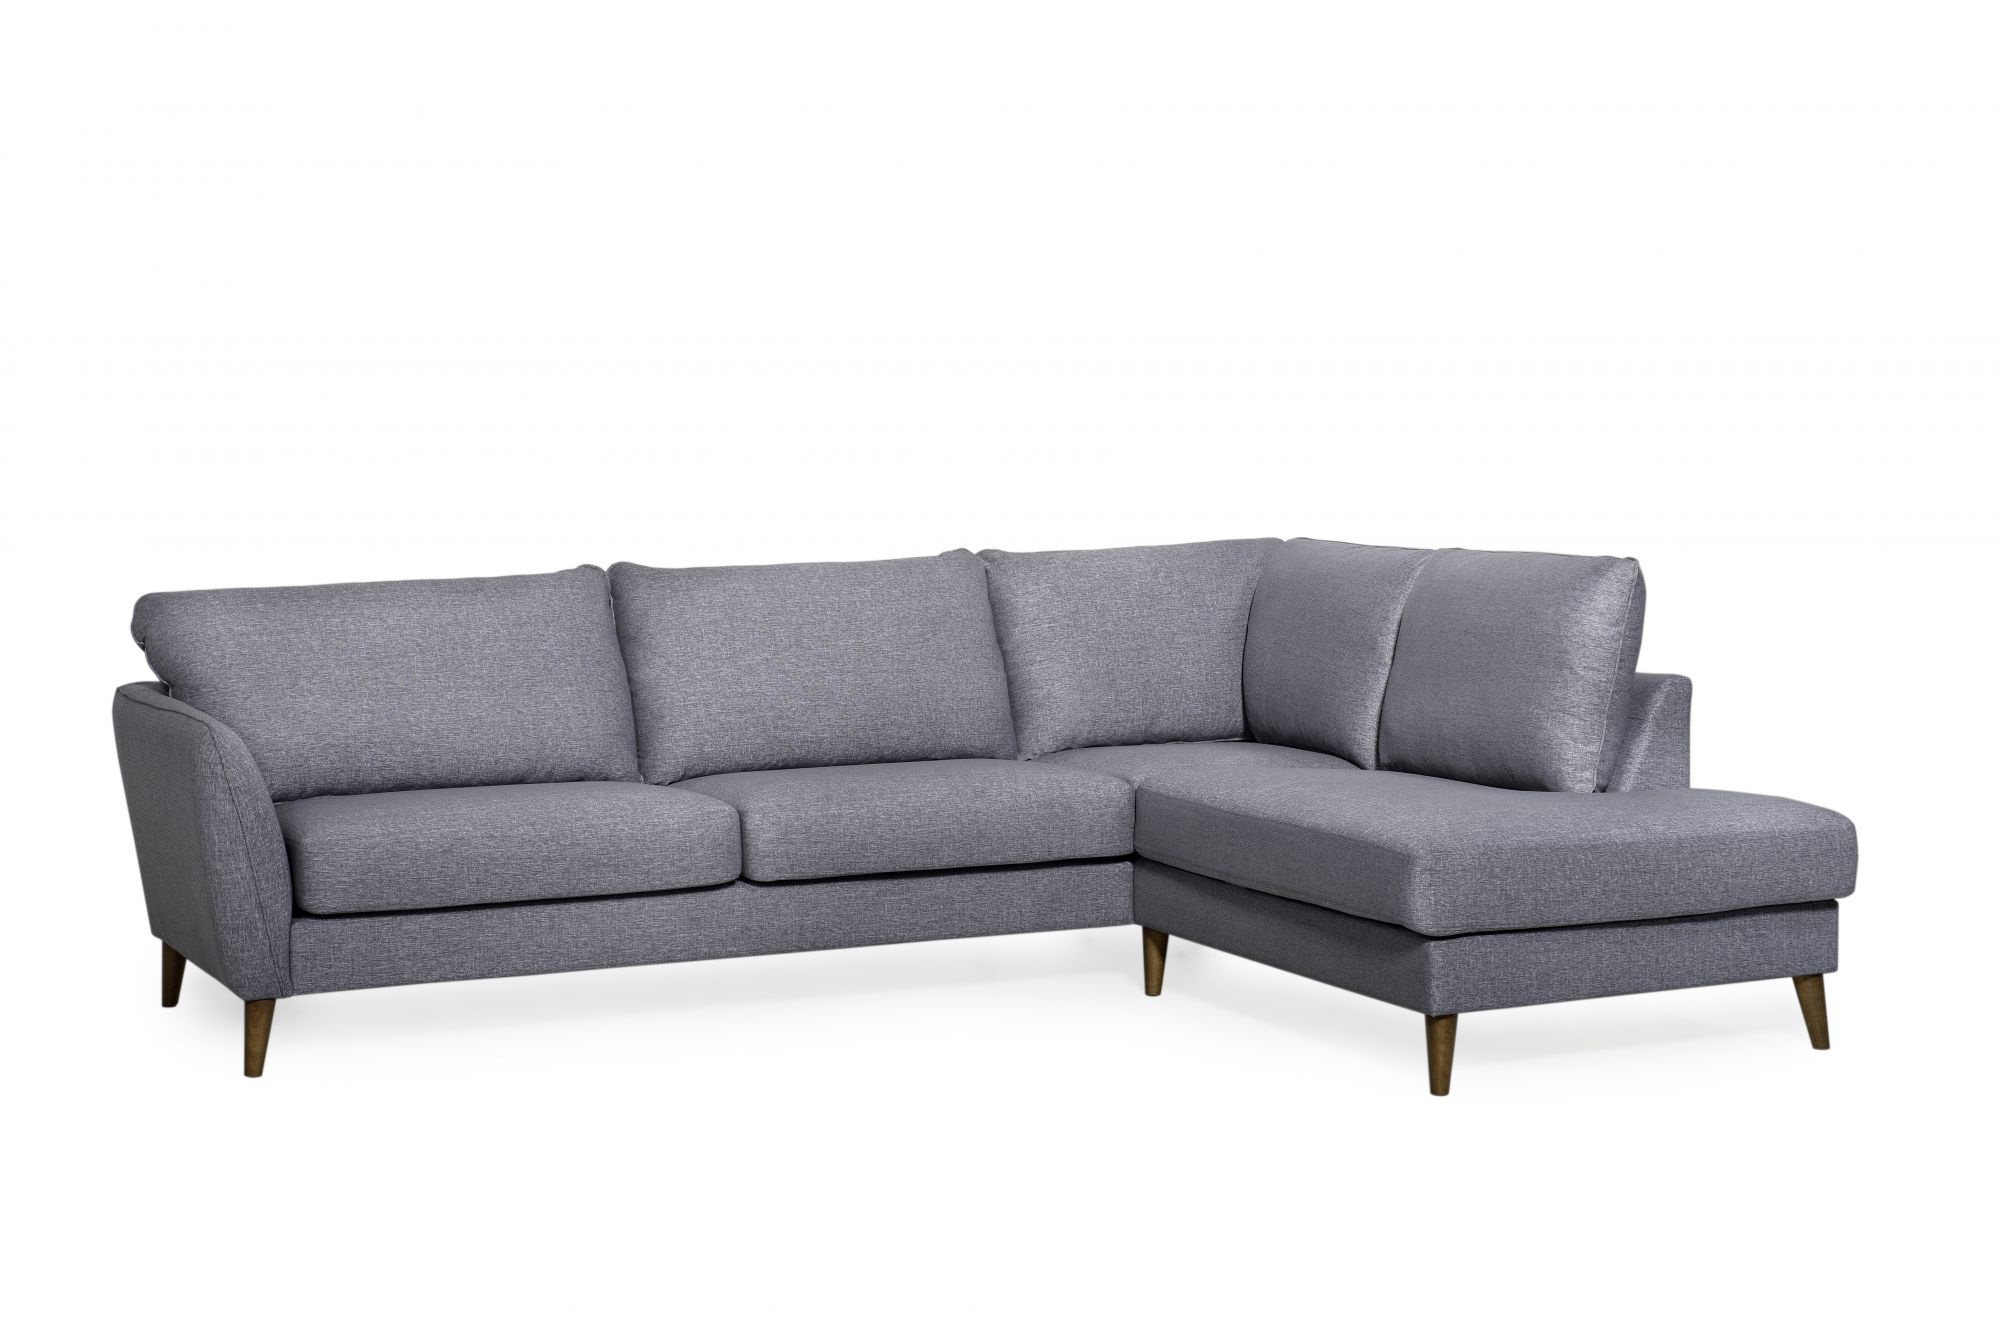 Scully 2 Seater Sofa With Corner Unit And Chaise Rhf Fabric C Corner Sofas Meubles